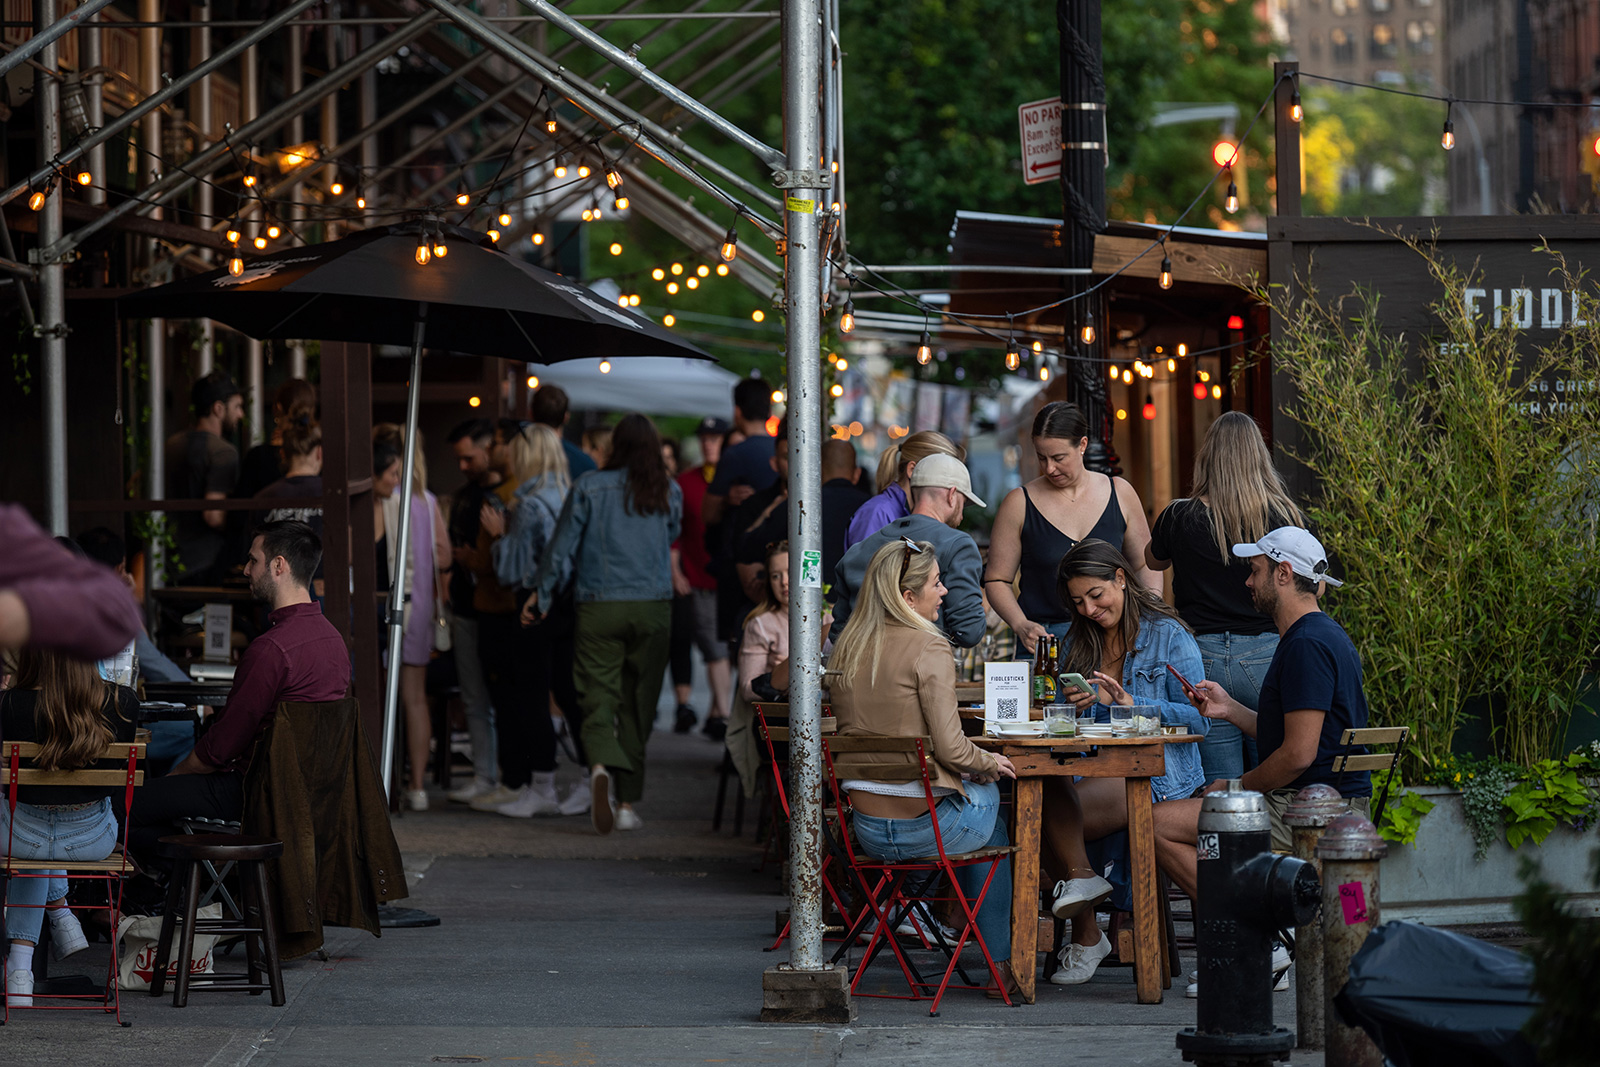 Customers dine outdoors at Fiddlesticks Bar on Memorial Day on May 31 in New York.